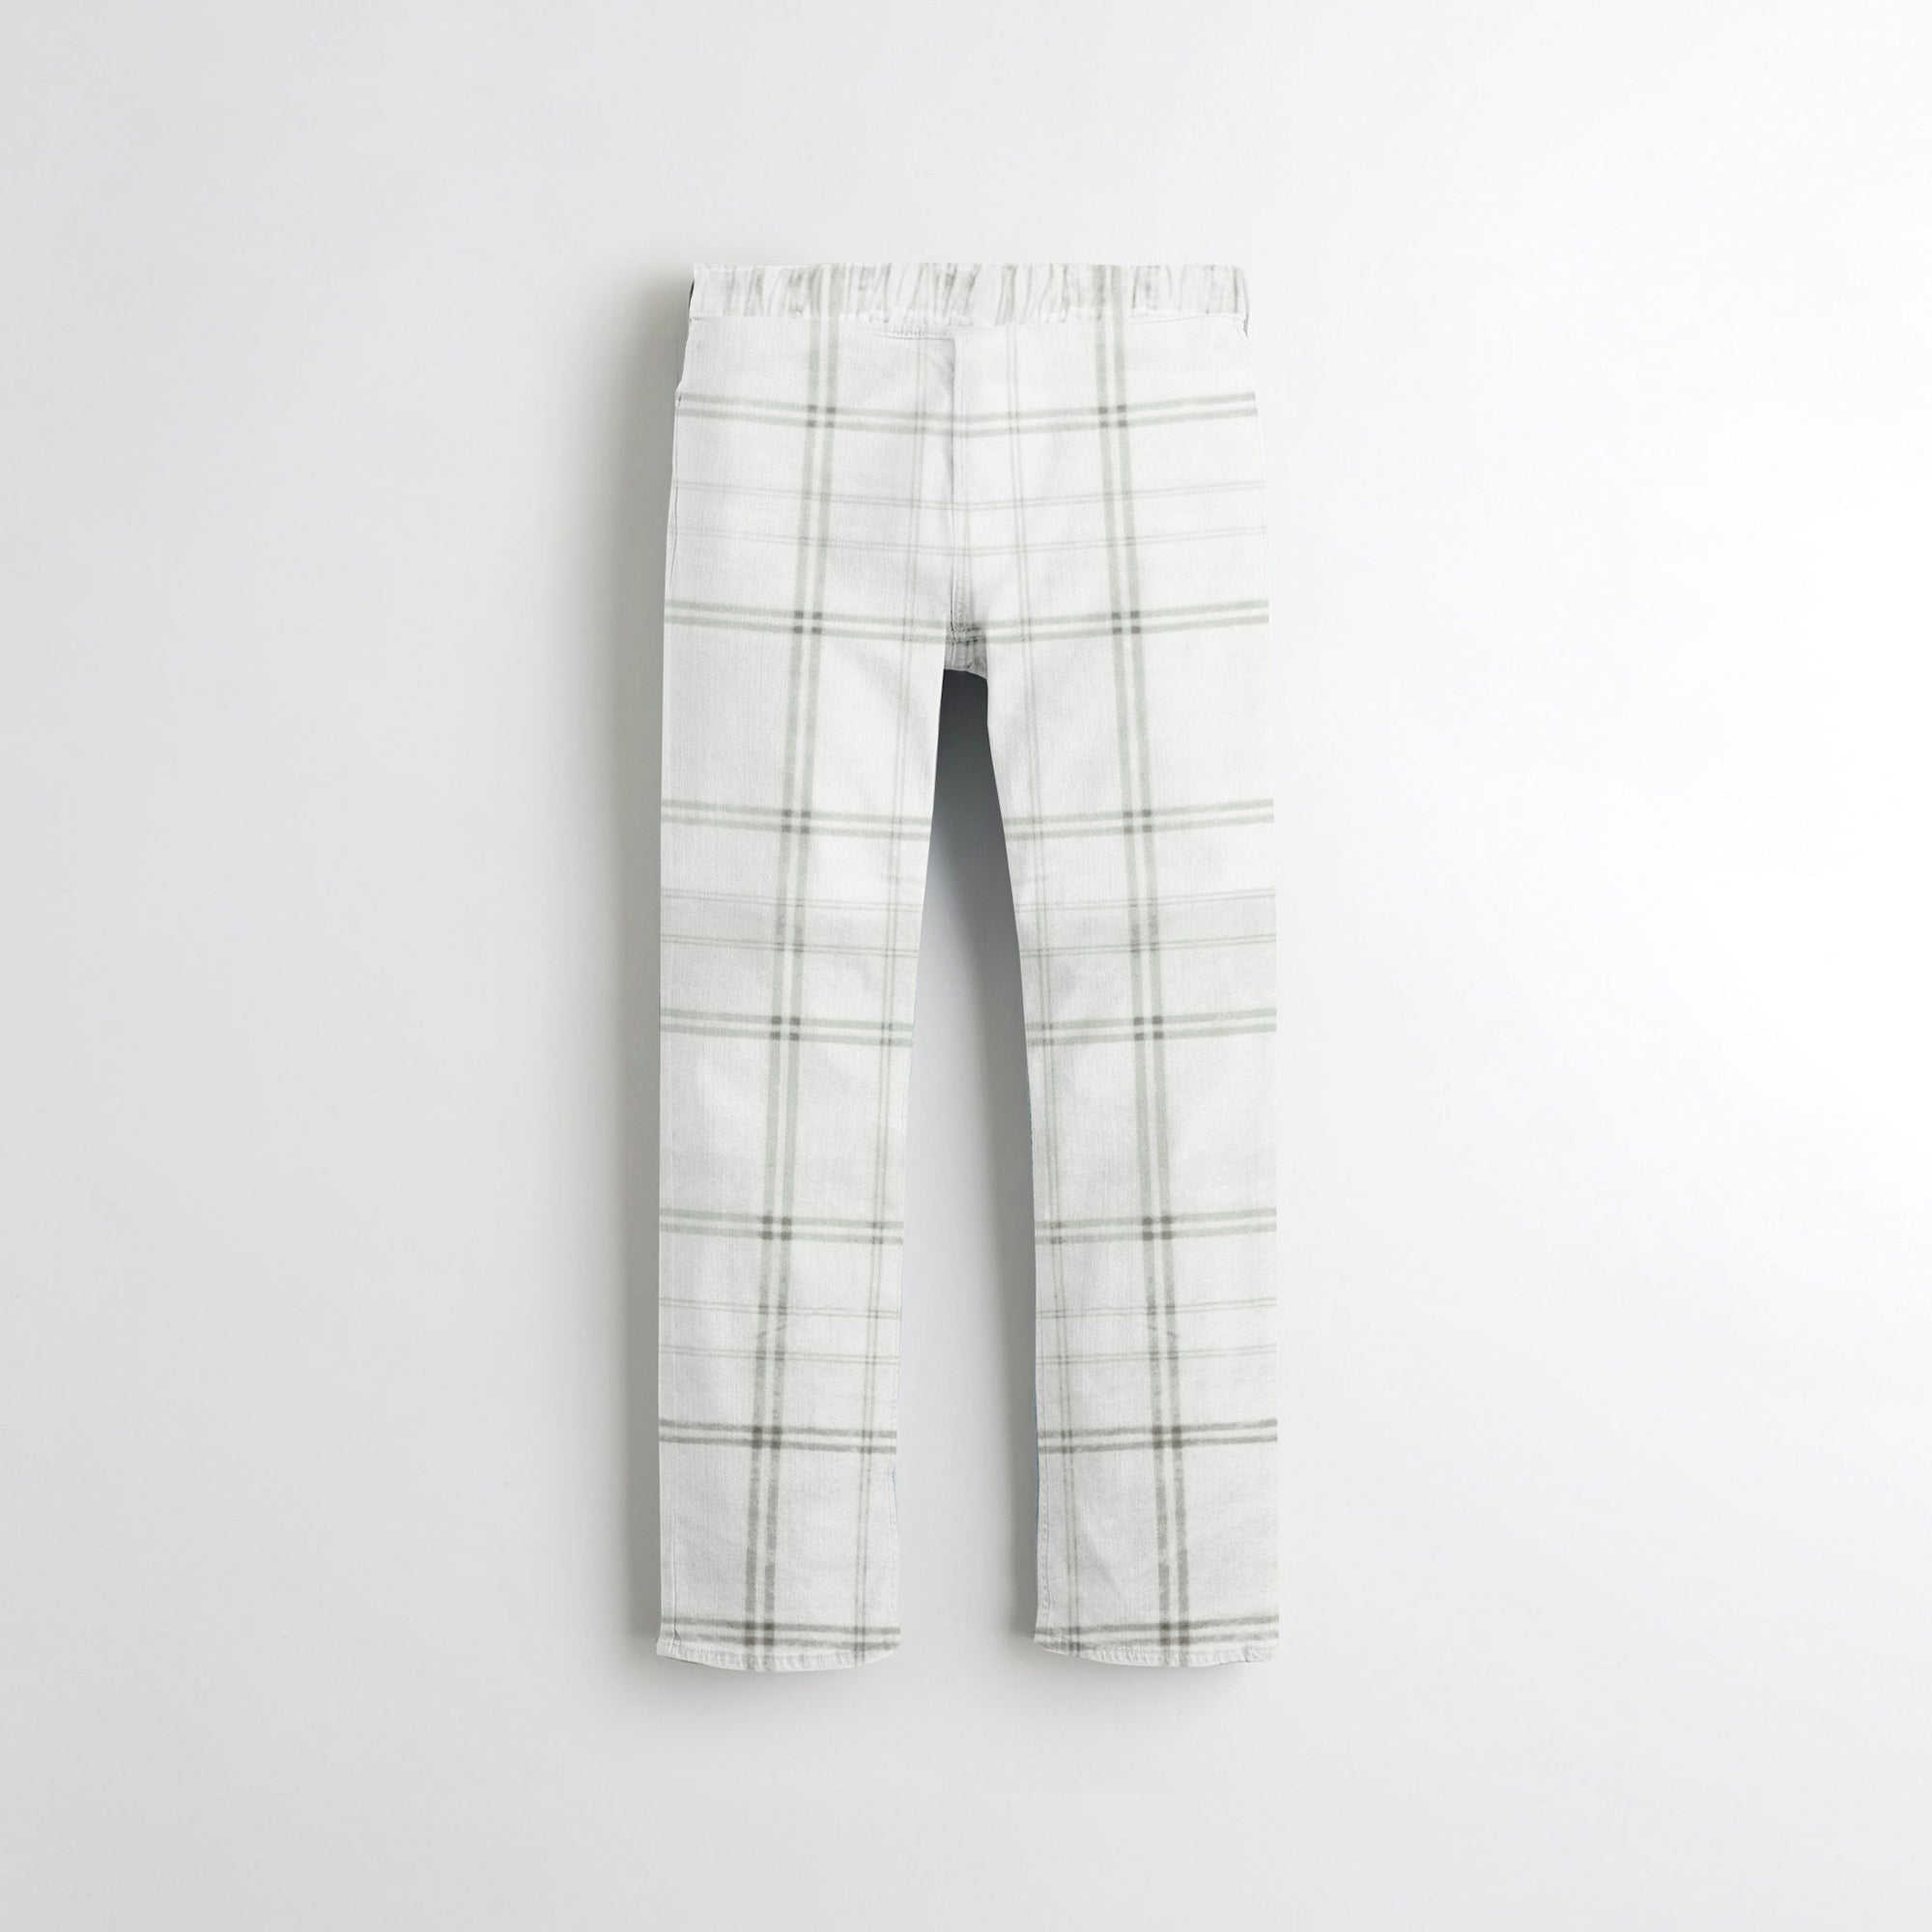 Zara Man Slim Fit Flannel Trouser For Kids-Allover Print-SP343